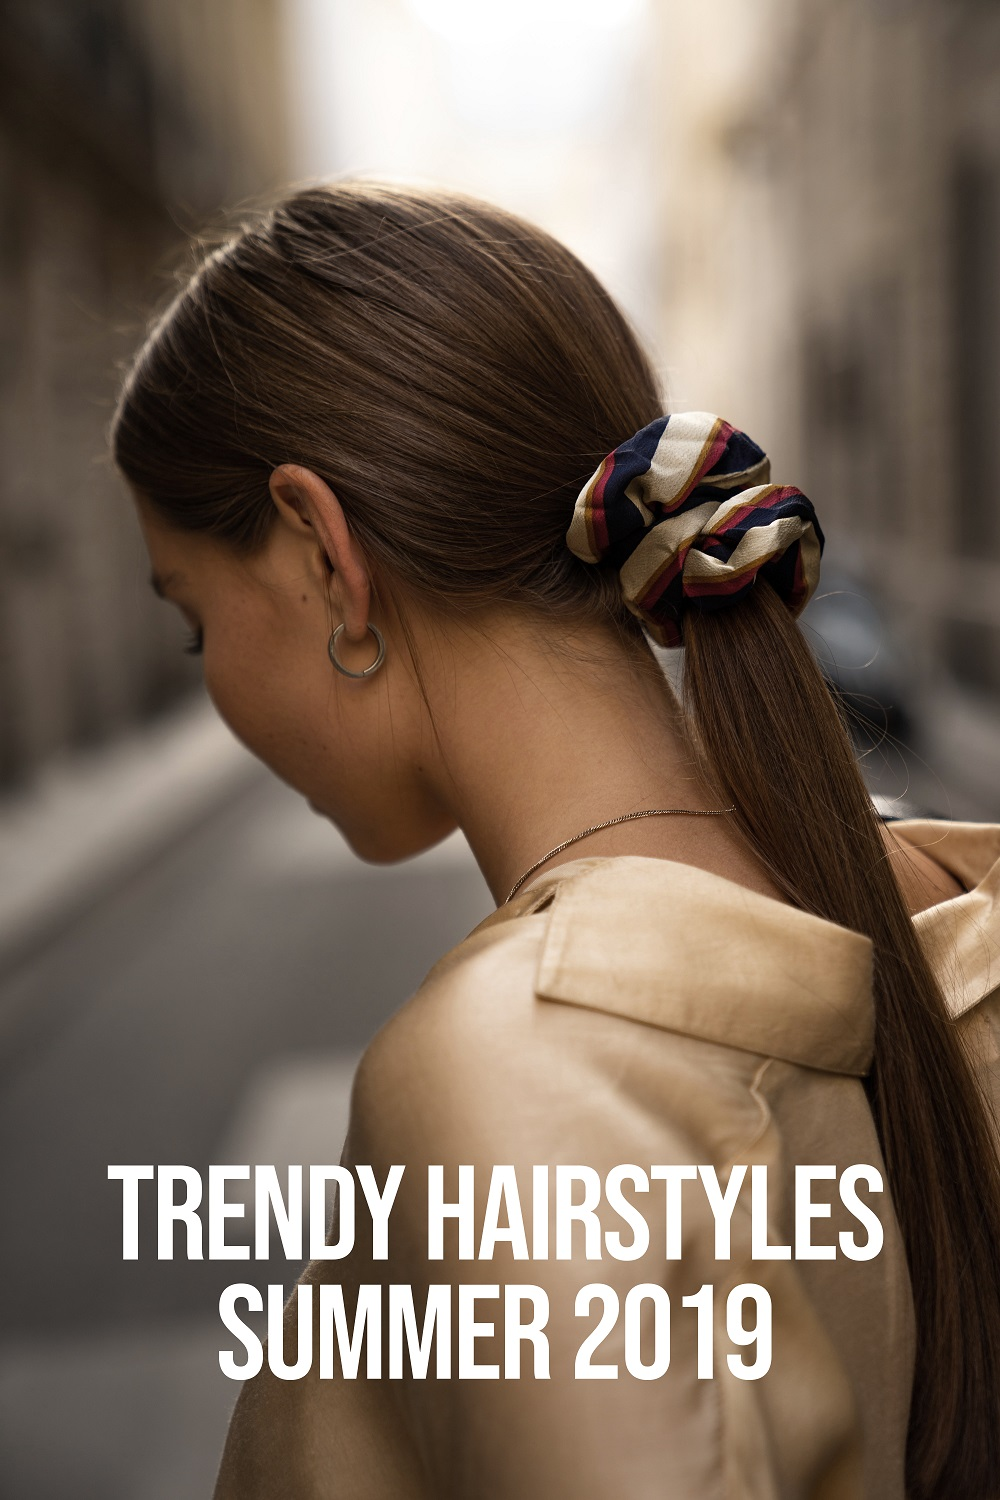 3 Stylish Hairstyles Summer 2019